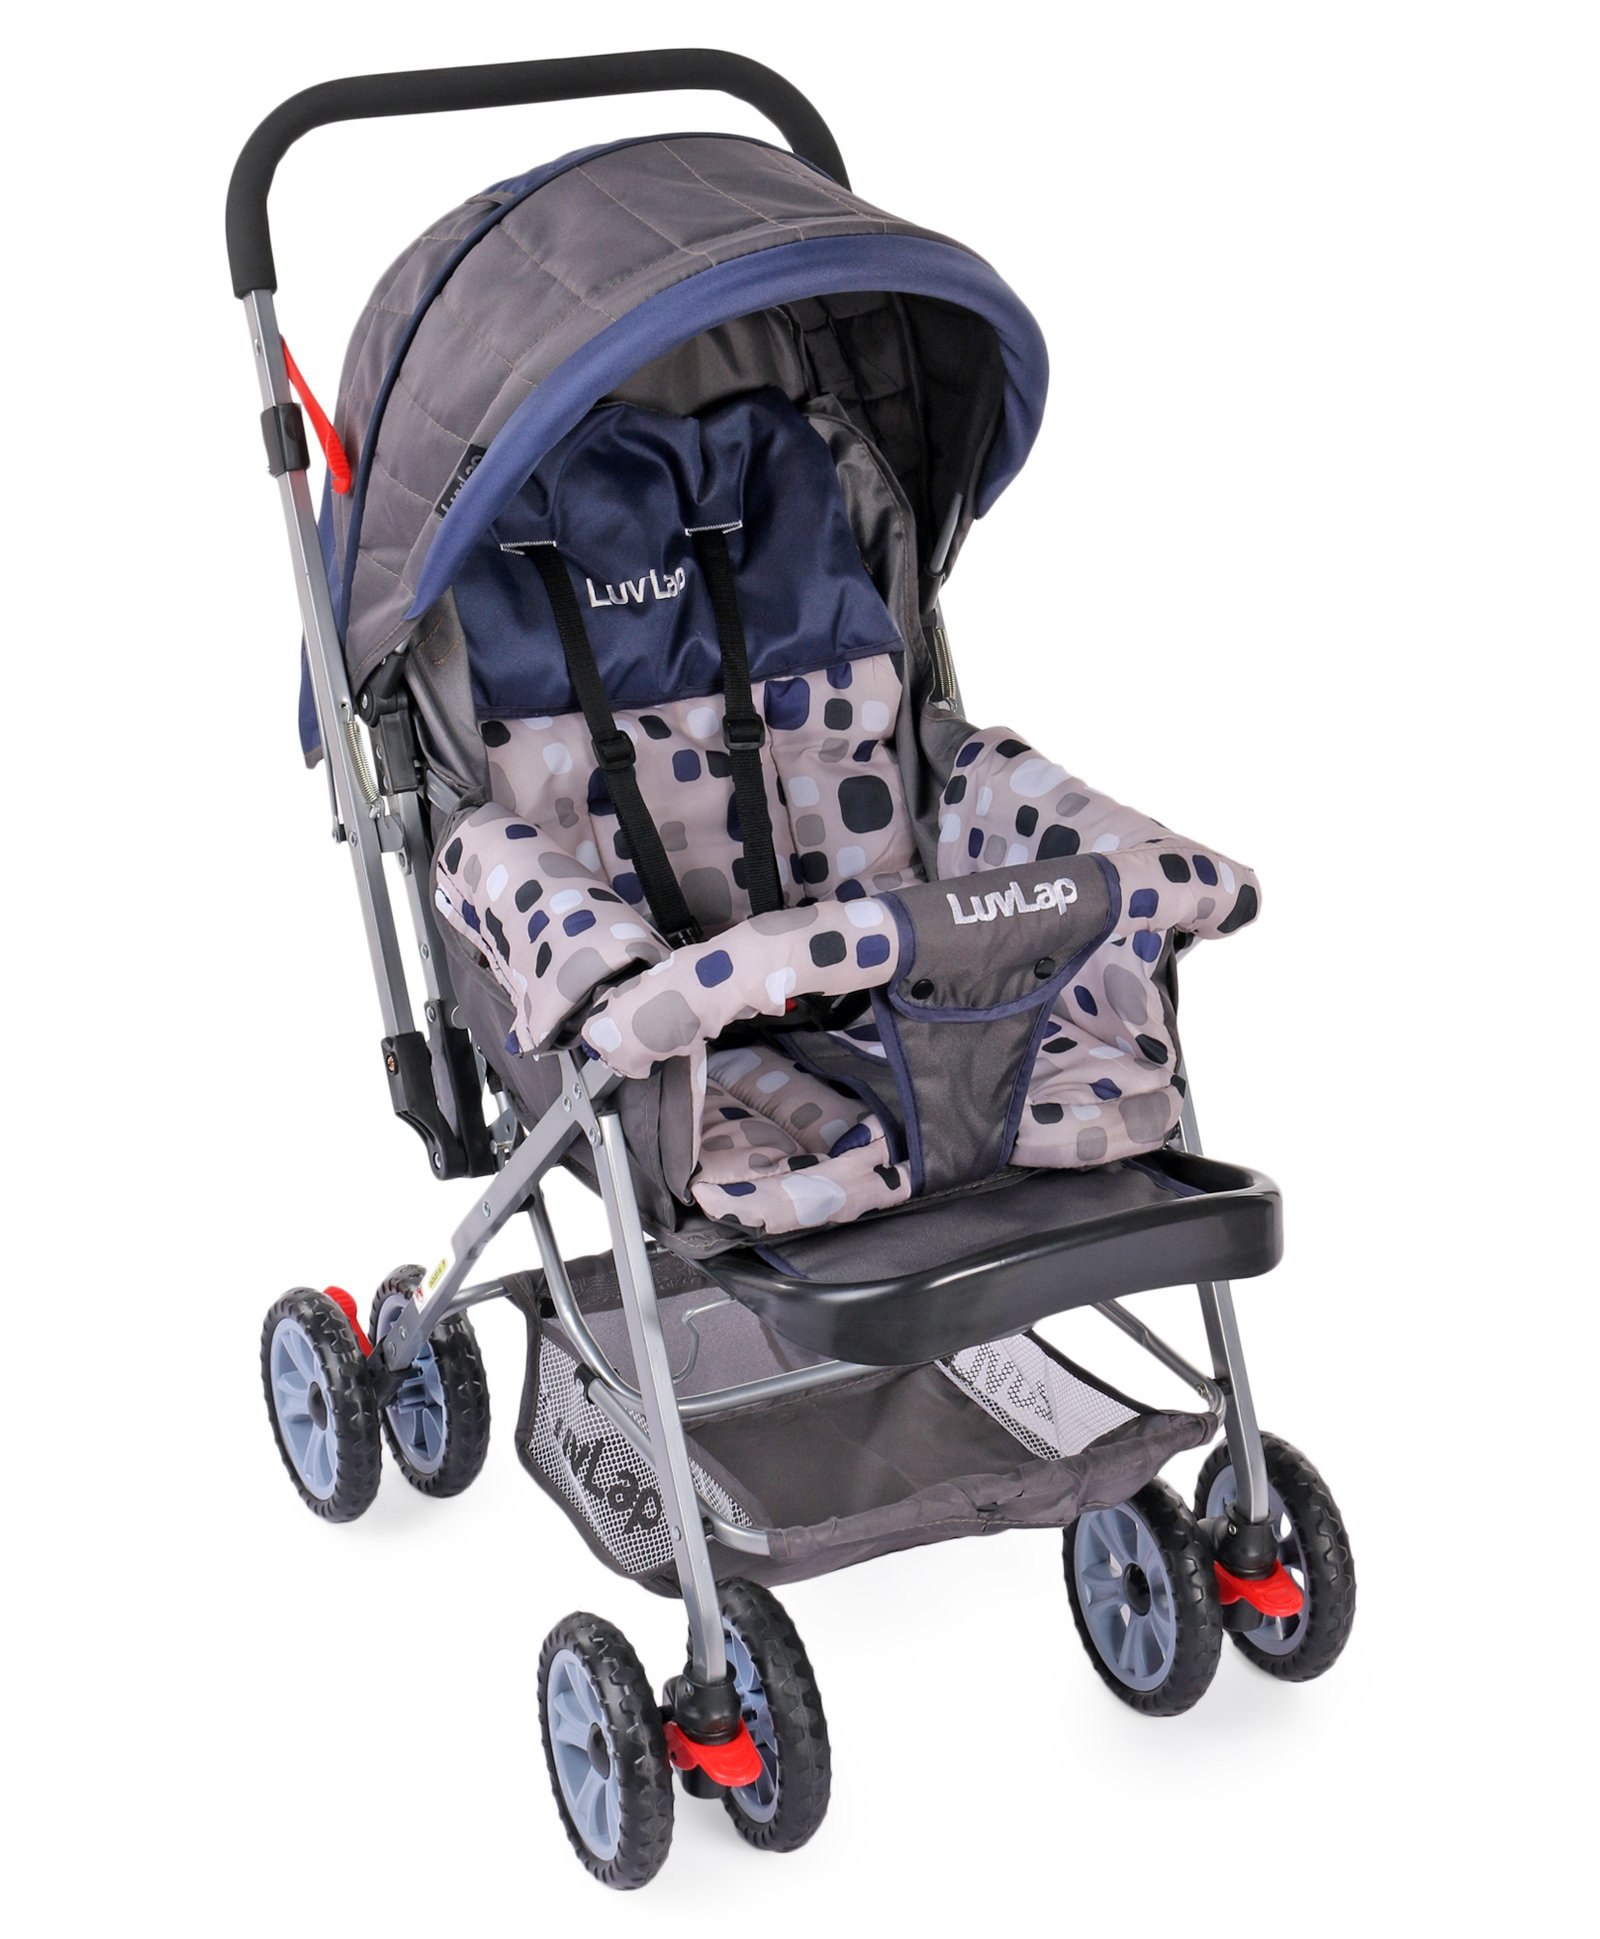 Pram Stroller India Luvlap Baby Stroller Pram Sunshine Navy Blue Online In India